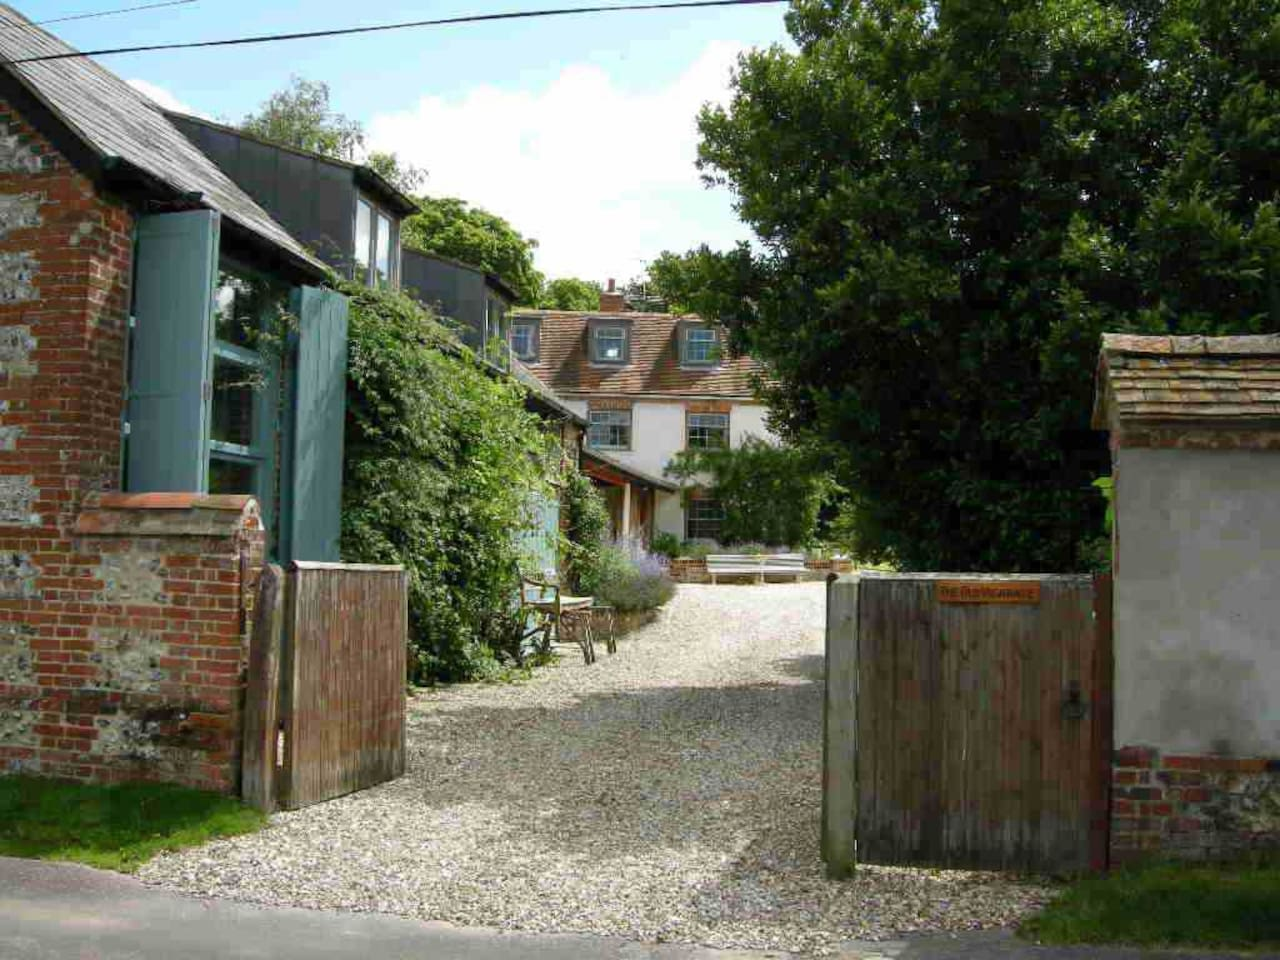 View from the lane Coach House on the left